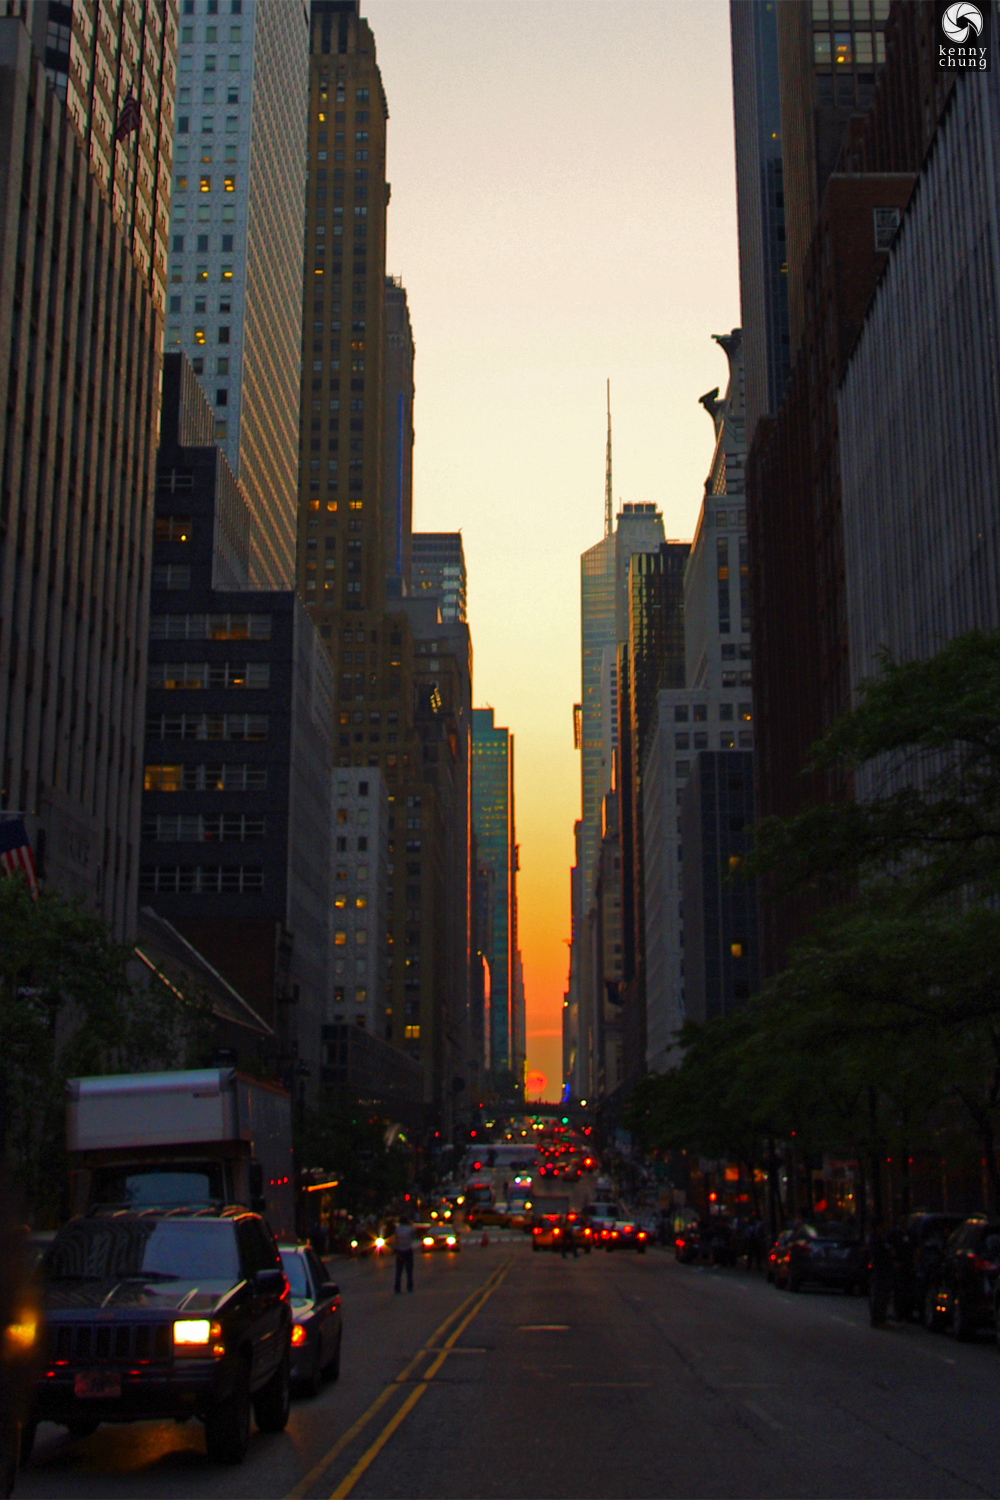 42nd Street Manhattanhenge on May 31, 2011